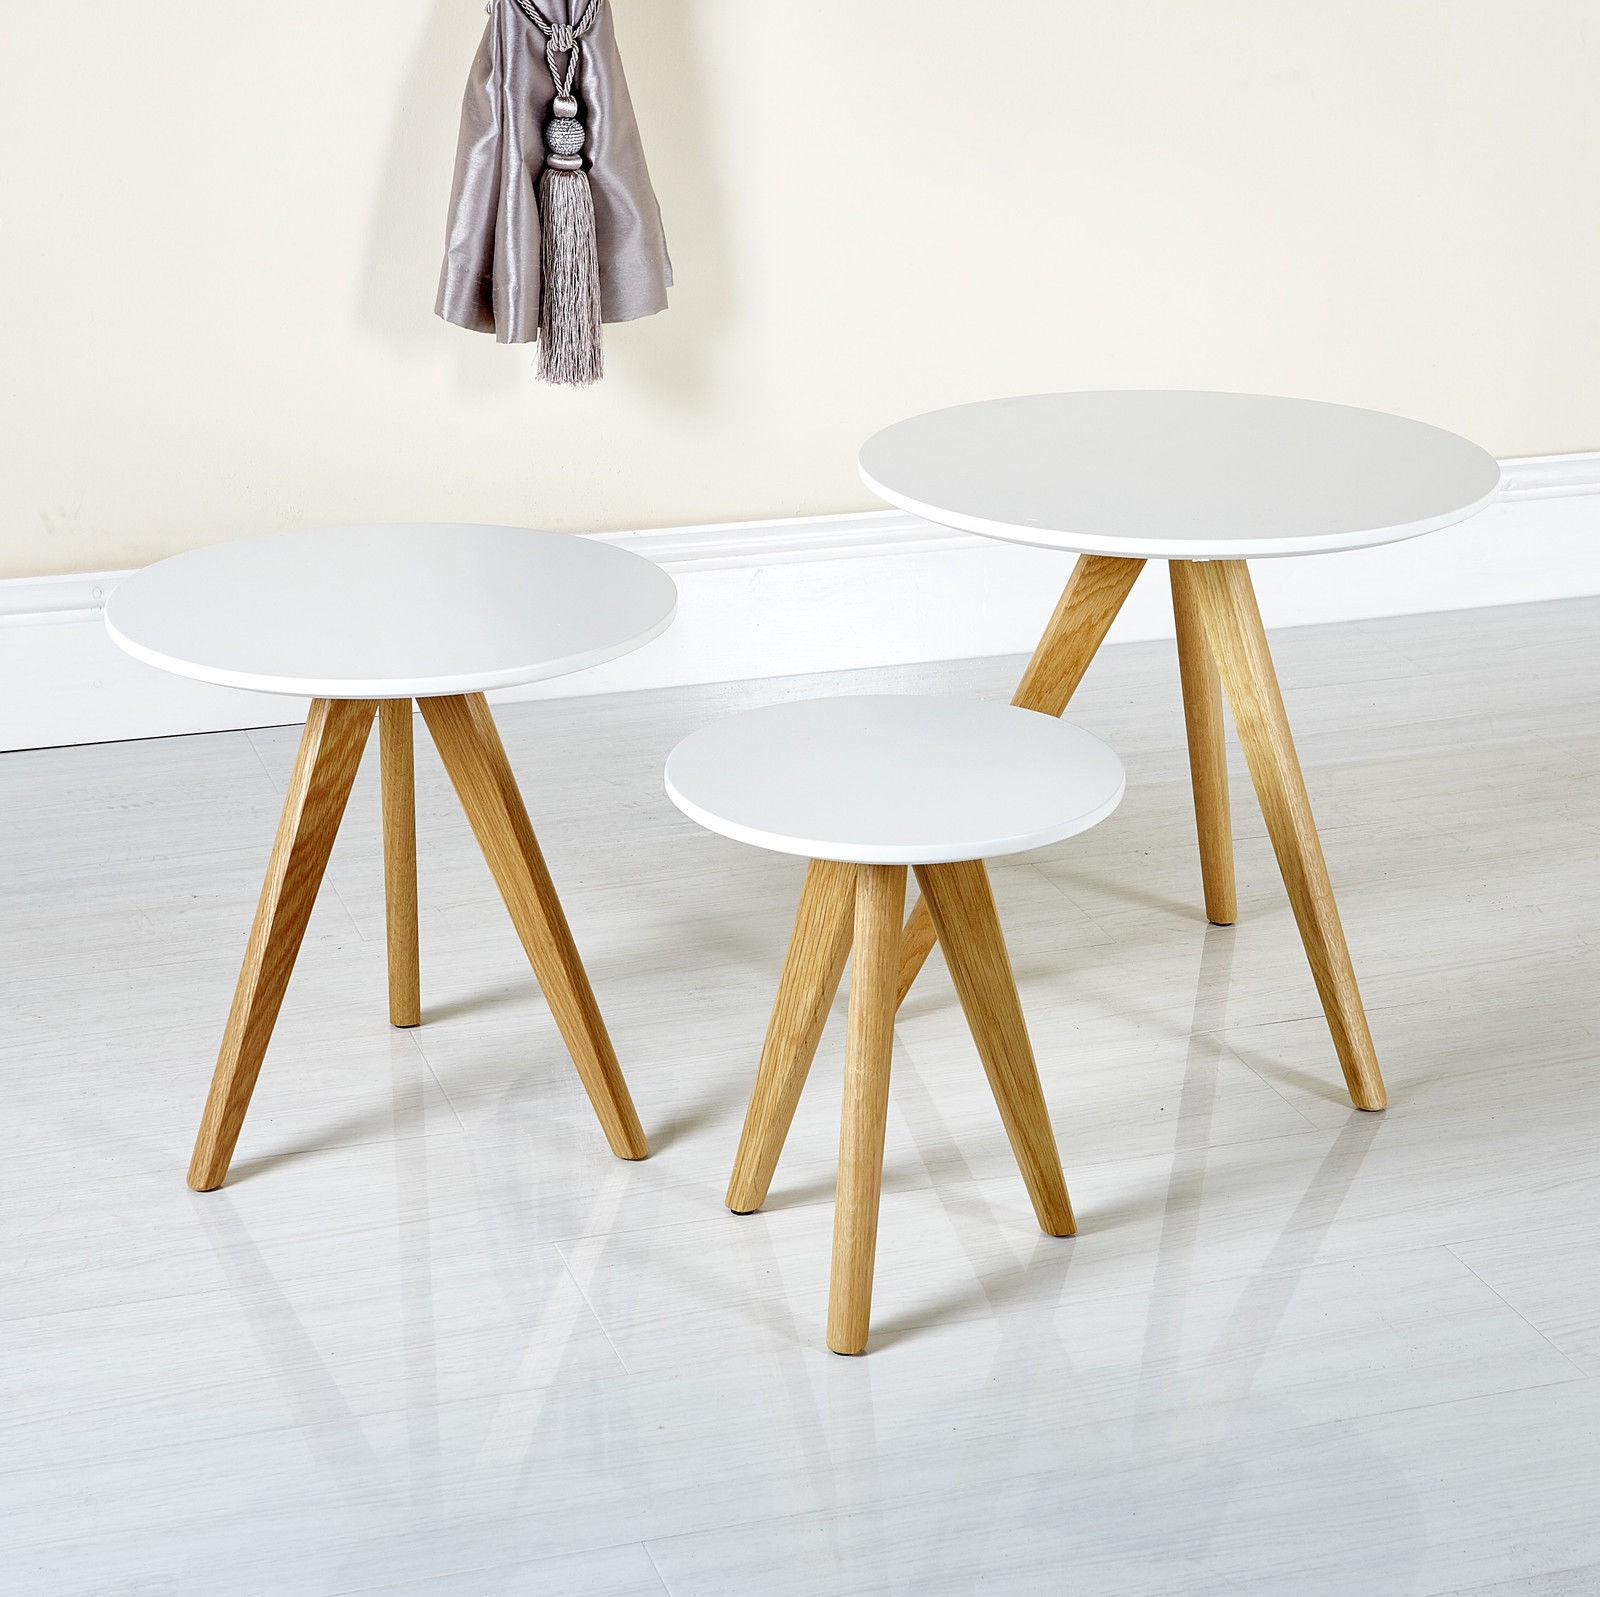 Scandinavian retro style white nesting tables Abreo Home Furniture